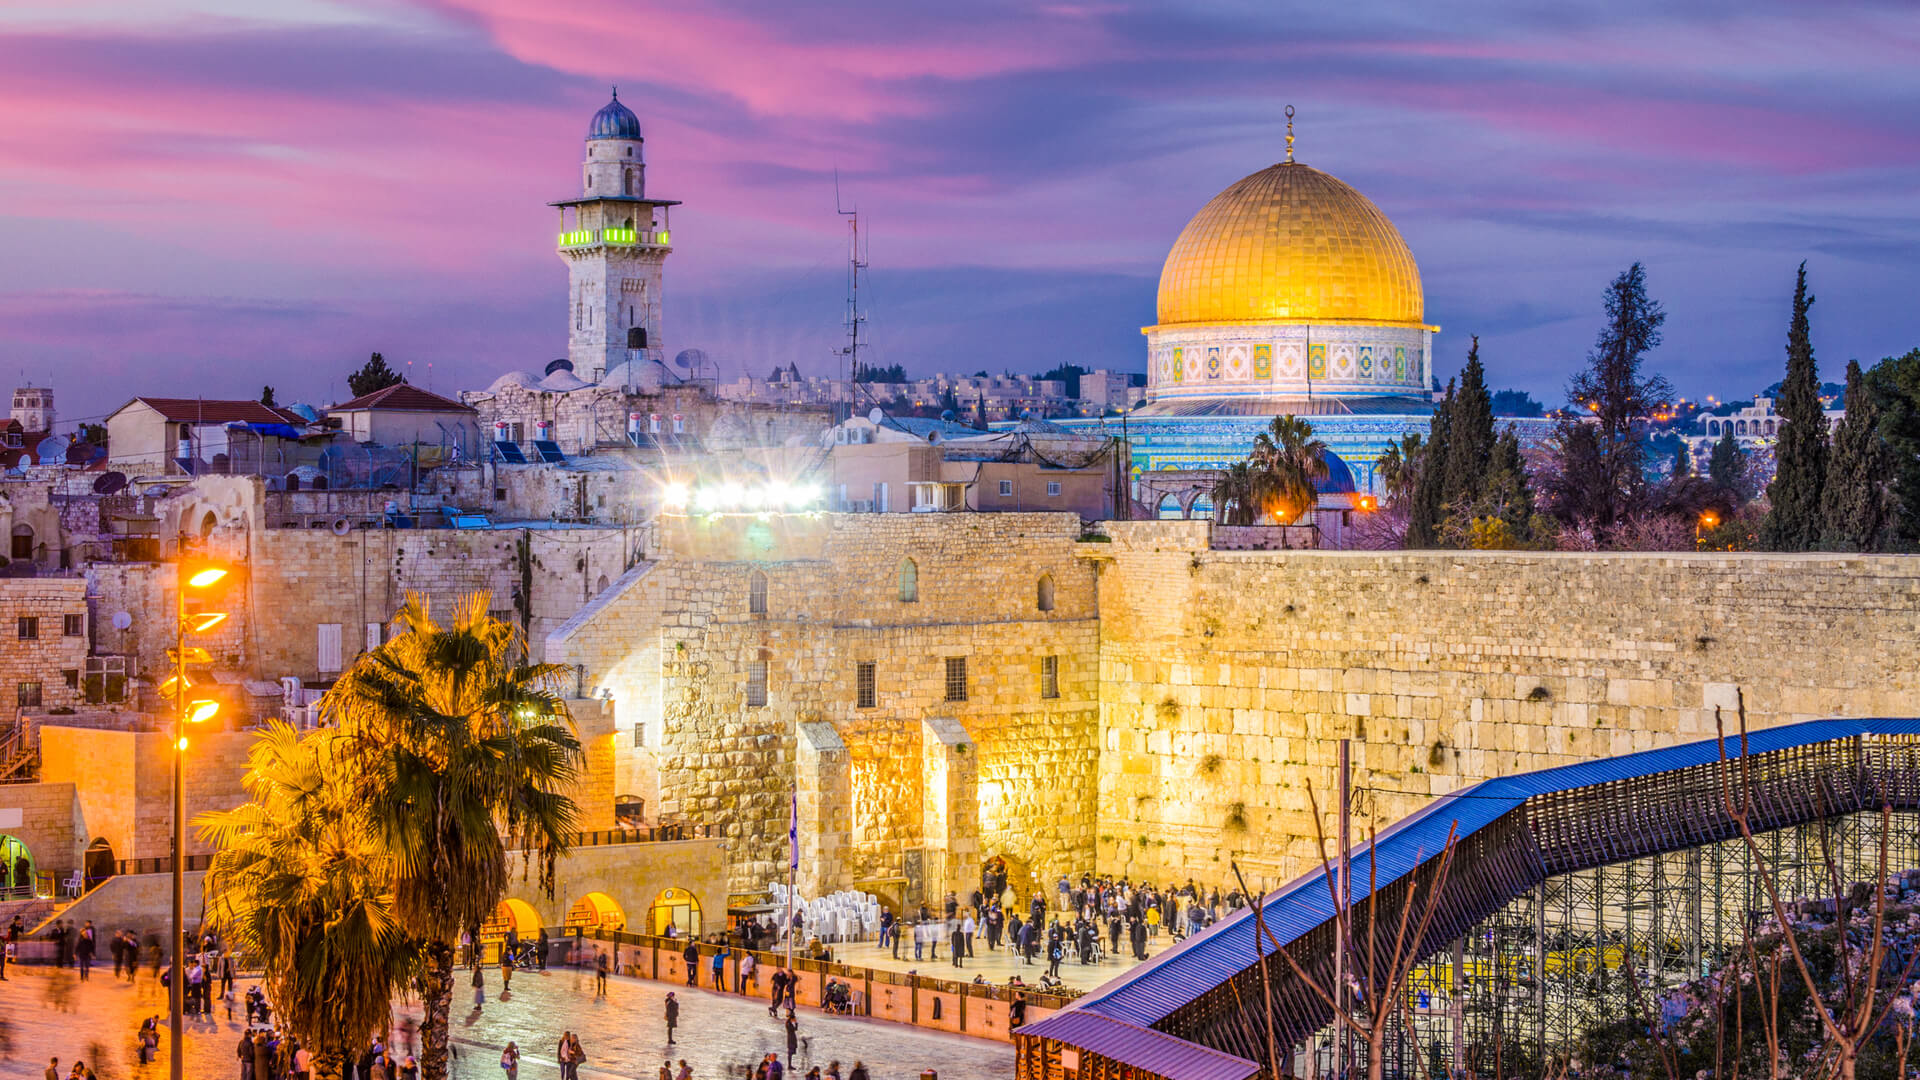 The Western Wall and the Dome of the Rock in Jerusalem, Israel